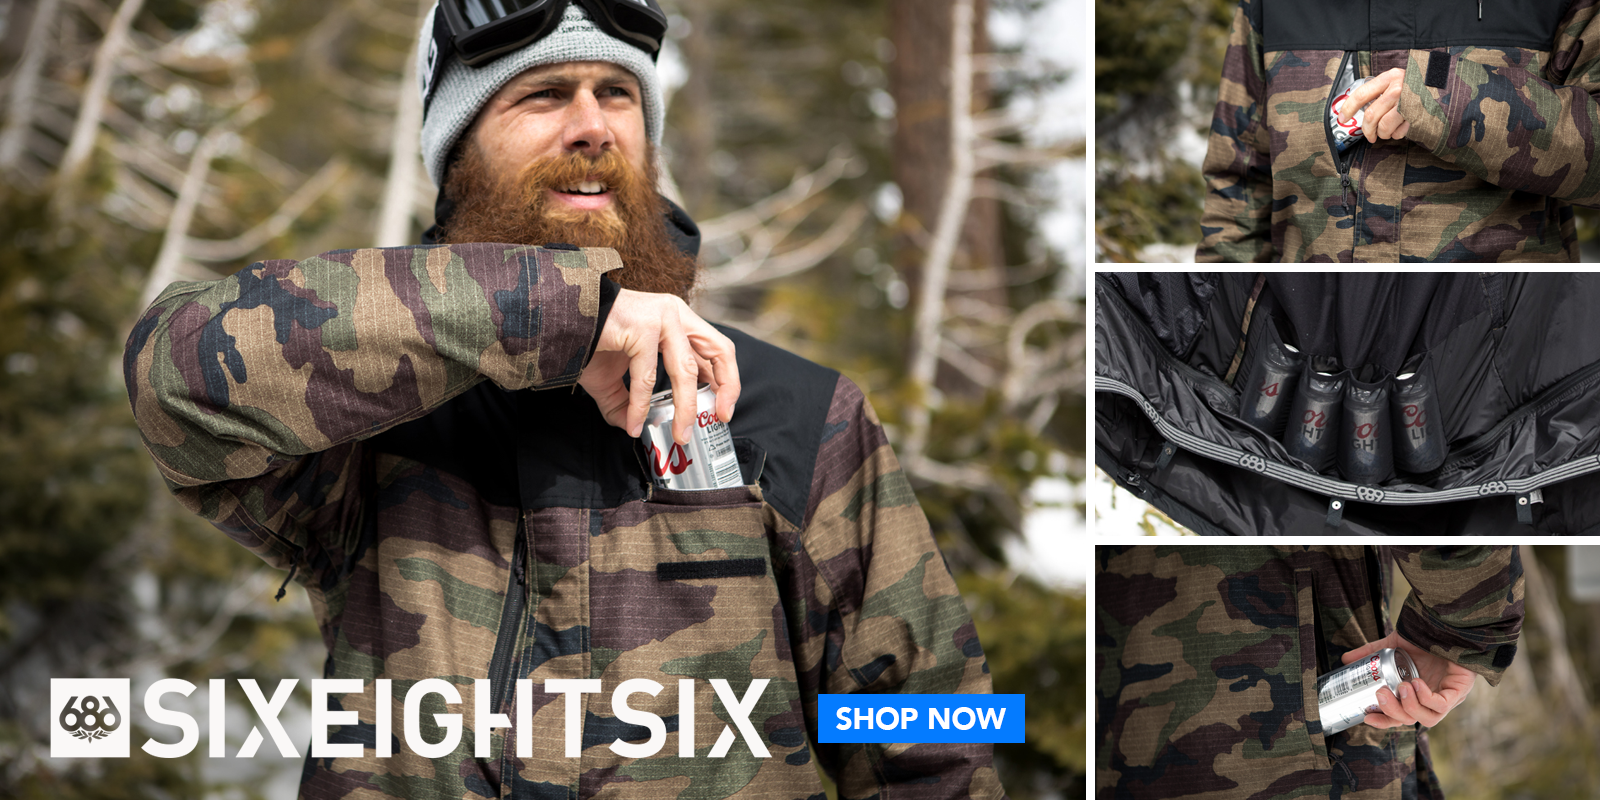 686 Snowboard Jacket - Online Snowboard Apparel Store - Freeride Boardshop